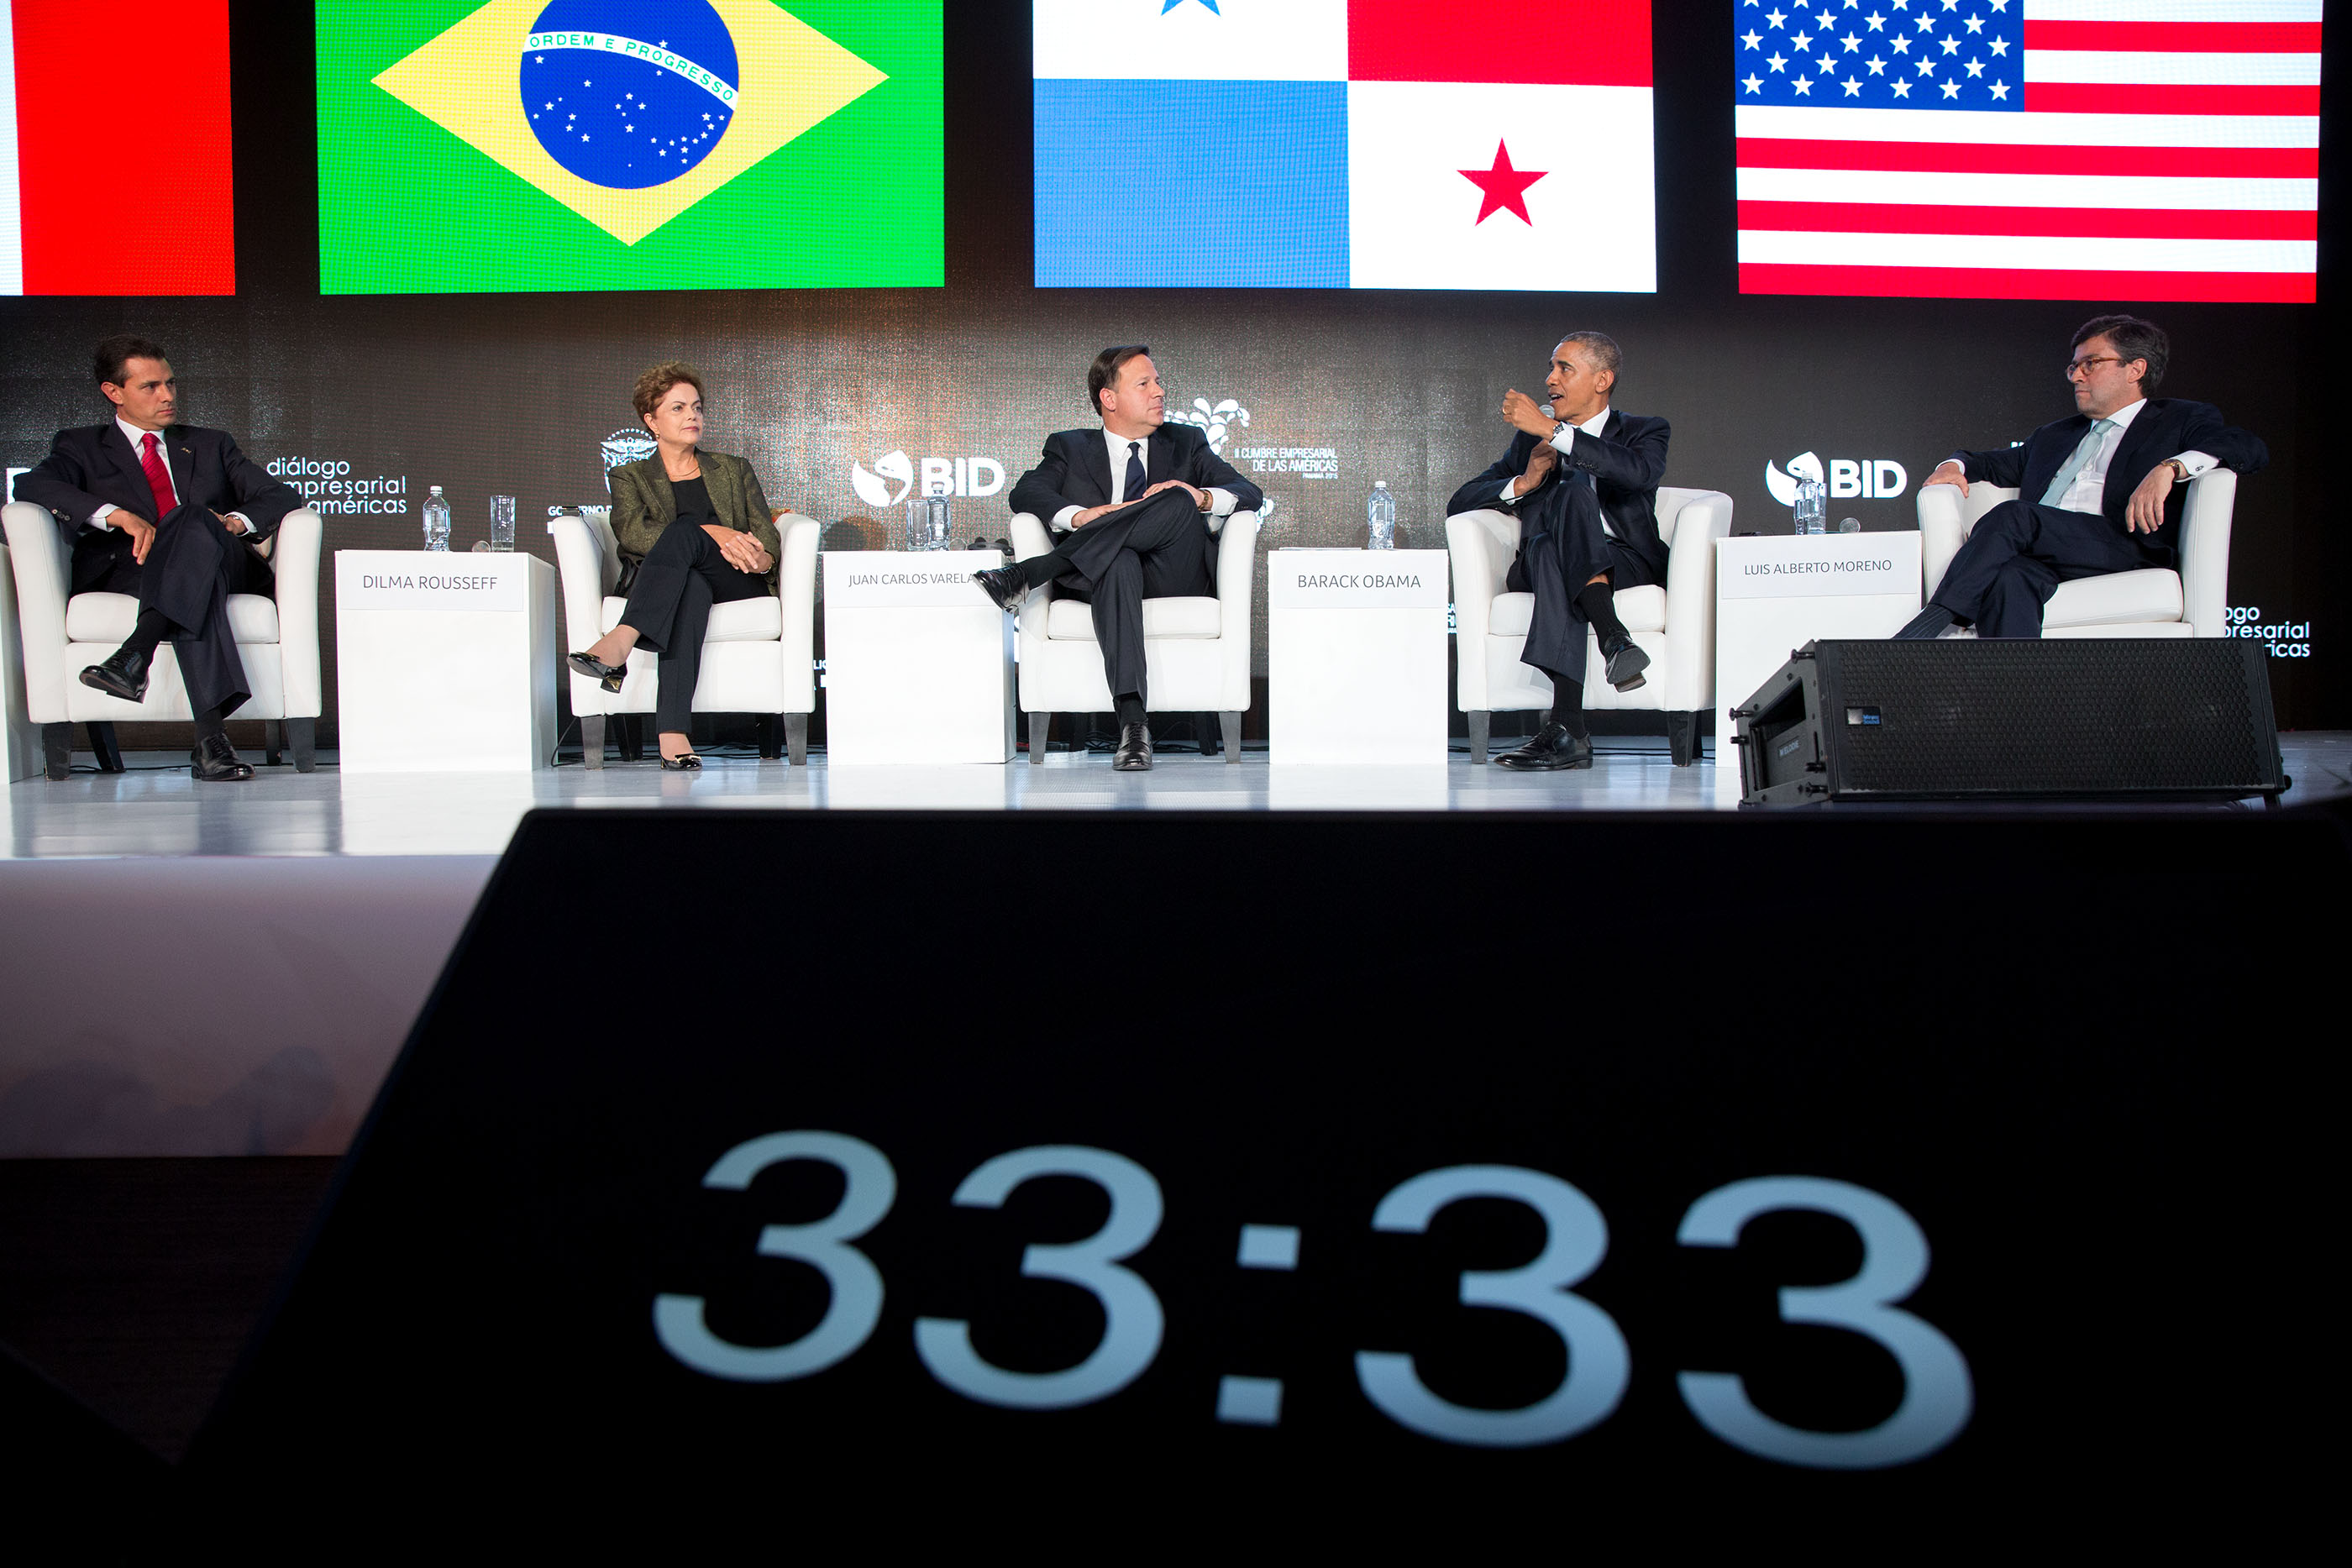 President Obama participates in the CEO Summit of the Americas with, left to right, President Enrique Peña Nieto of Mexico, President Dilma Rousseff of Brazil, President Juan Carlos Varela of Panama and International Development Bank President Luis Alberto Moreno. (Official White House Photo by Pete Souza)